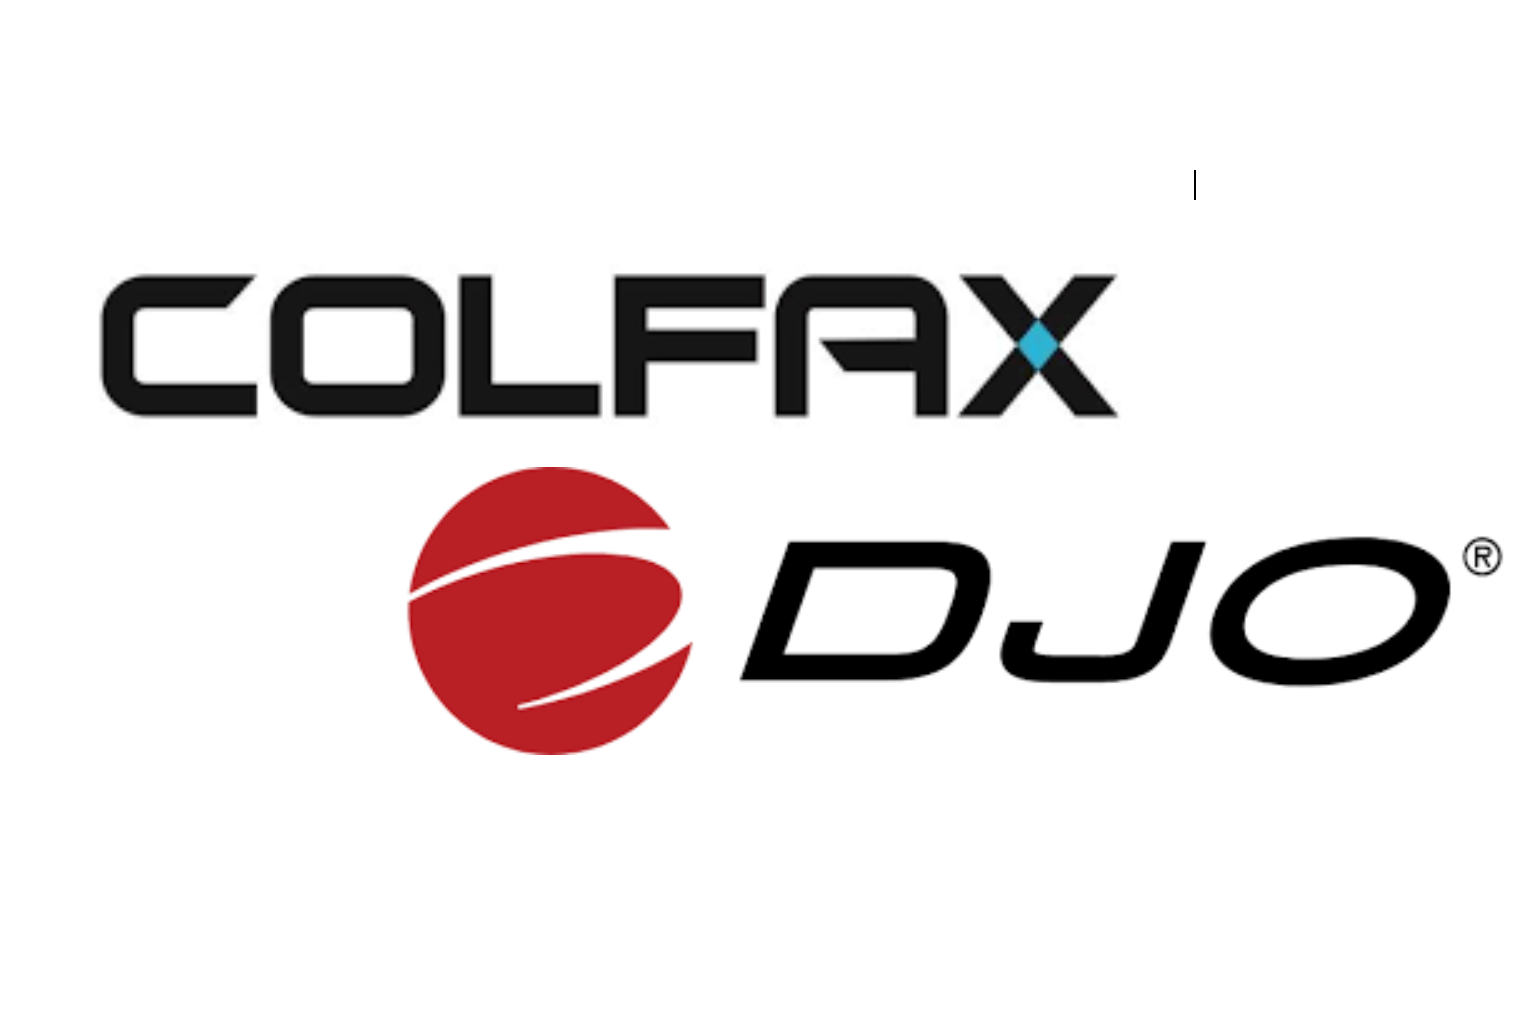 Colfax acquires DJO Global for $3.1B in cash (2.6 X sales)